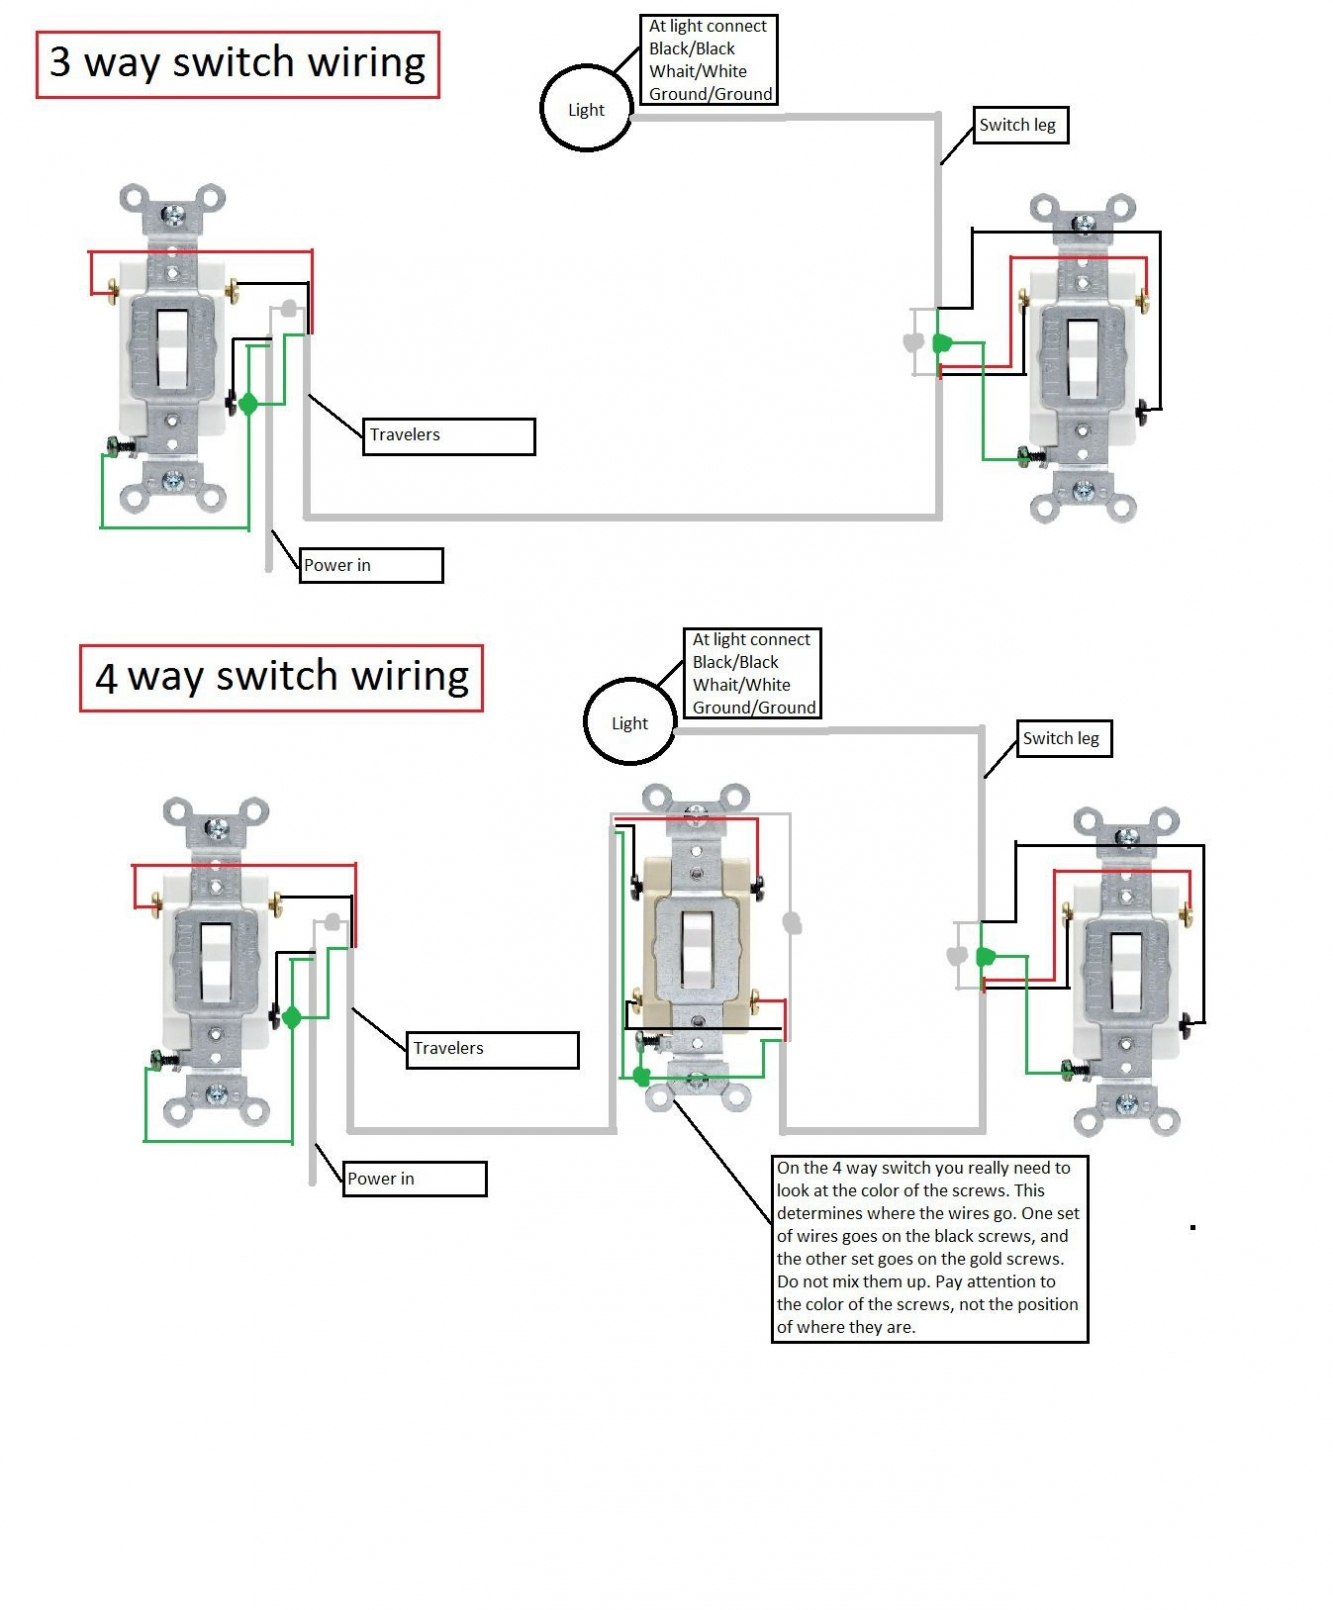 3 Way Light Switch Wiring Diagram Pdf | Wiring Diagram - 2 Way Switch Wiring Diagram Pdf